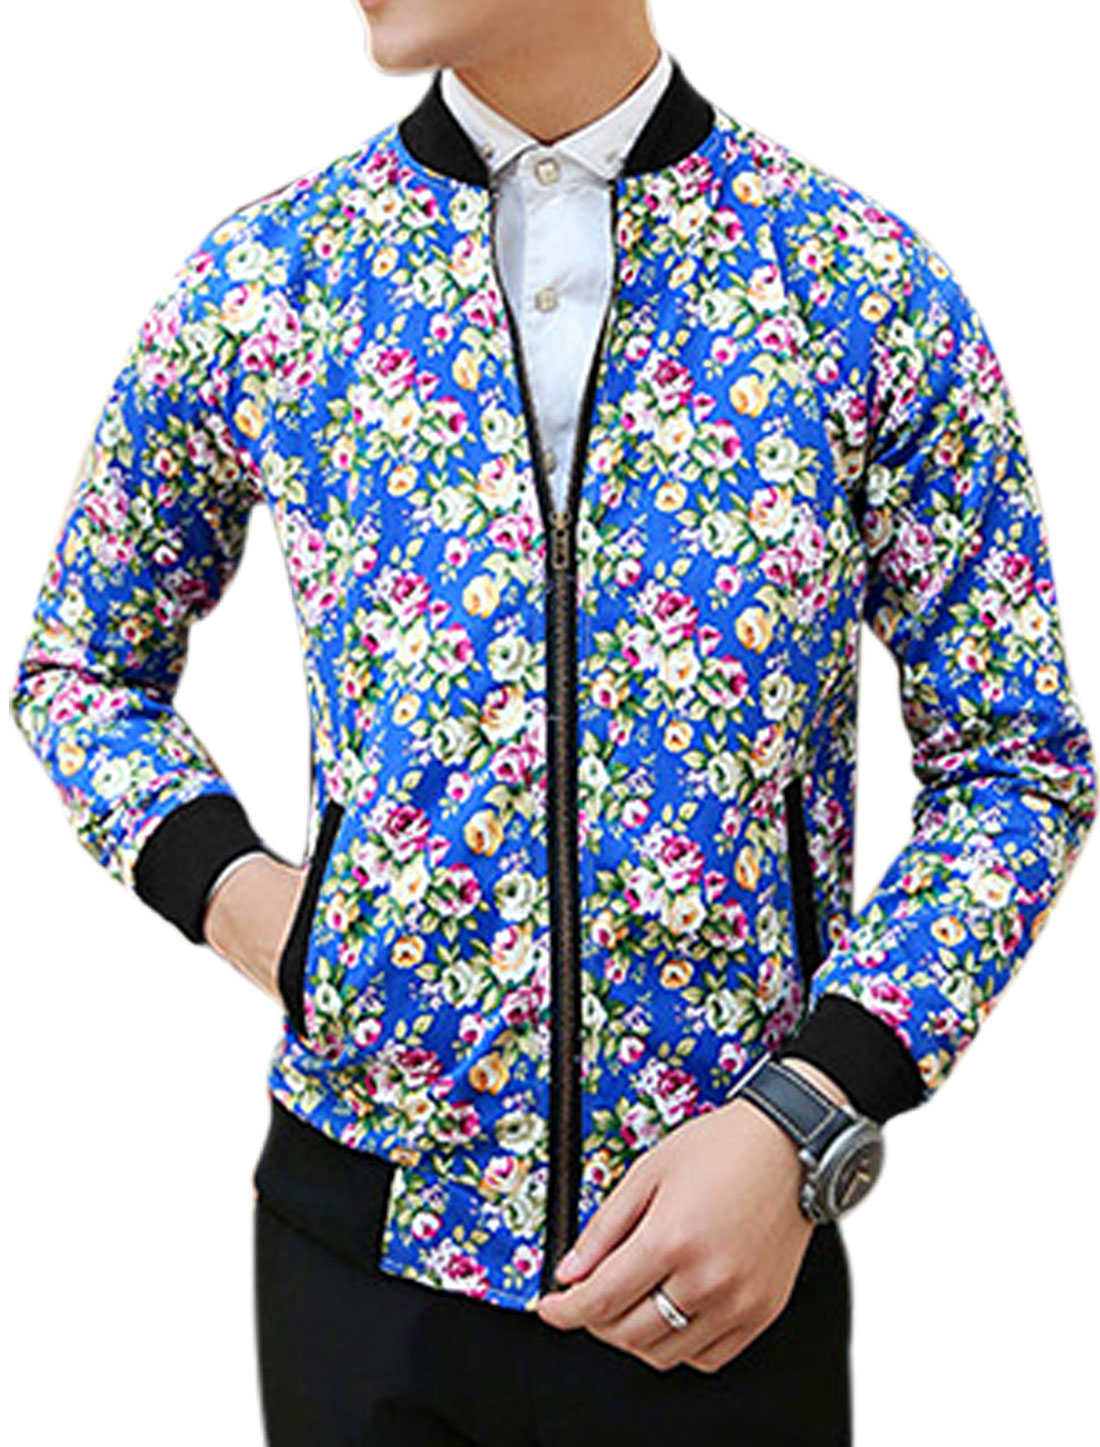 Man Royal Blue Stand Collar Long Sleeves Floral Print Zippered Front Jacket M